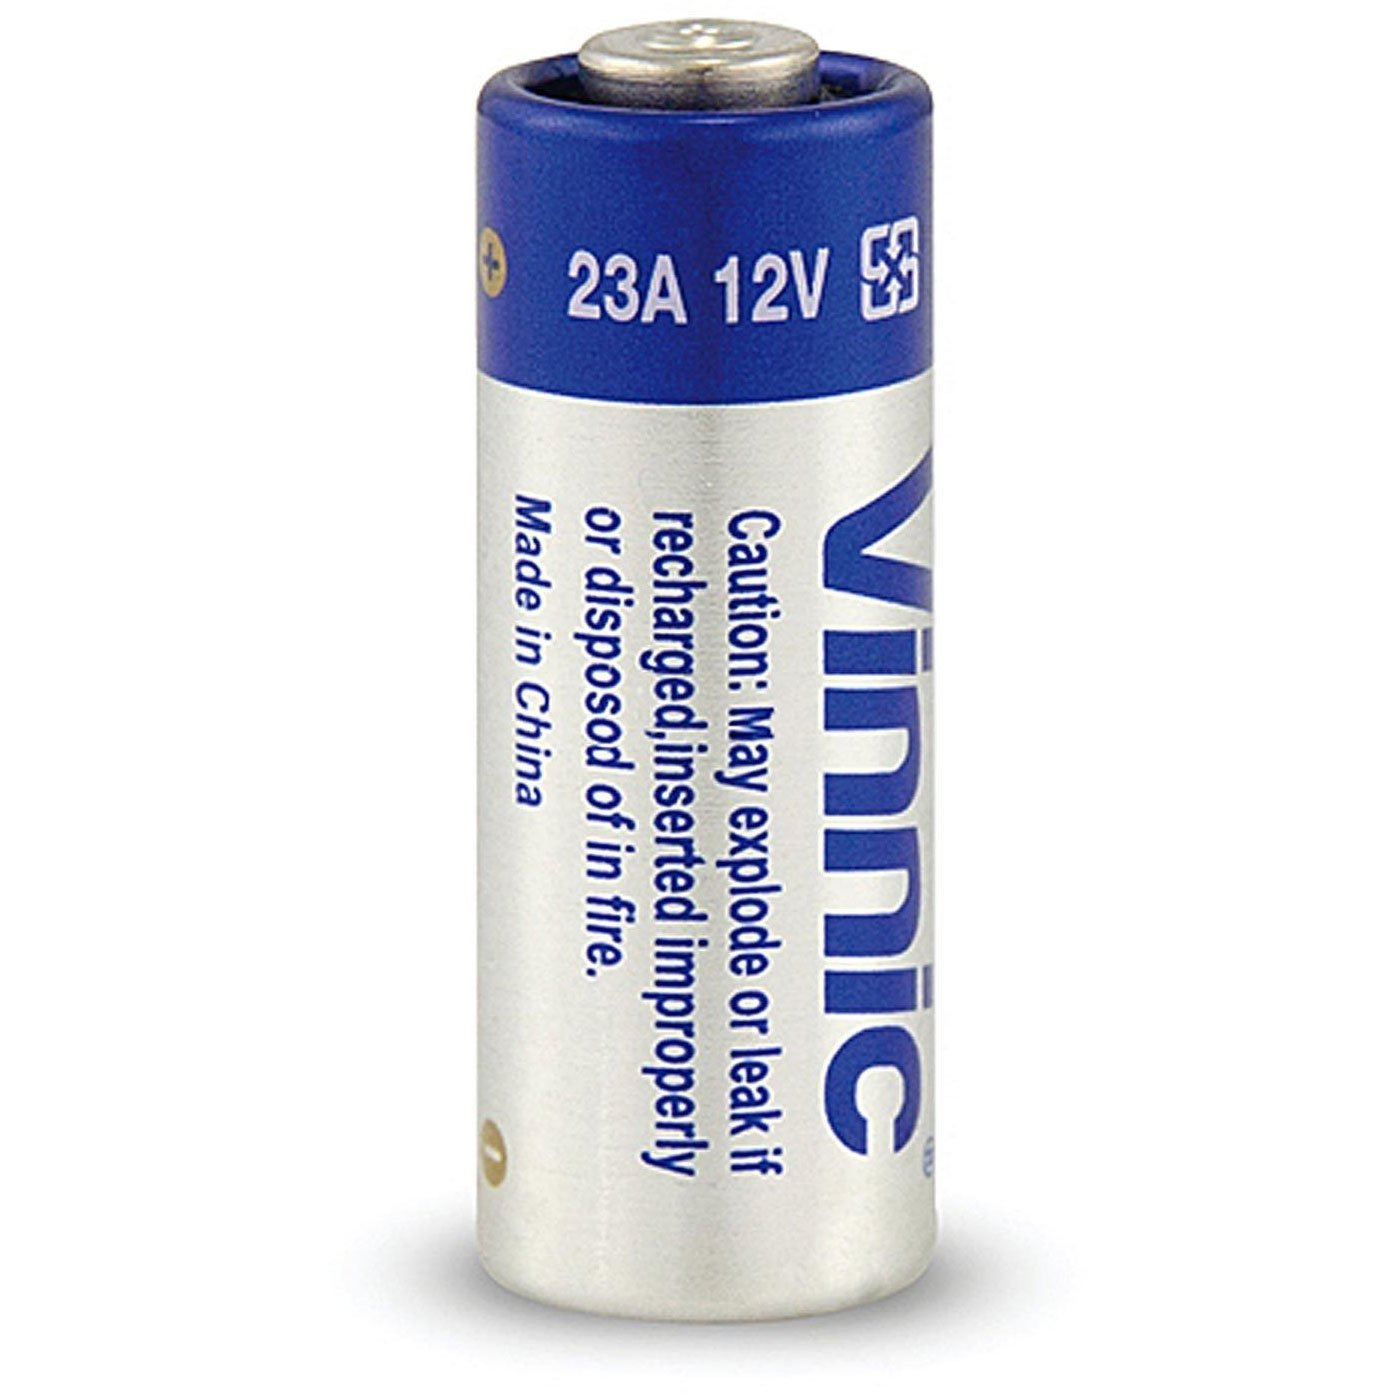 Batterie Aa A23 12 Volt Alkaline Battery 23a 12v Battery